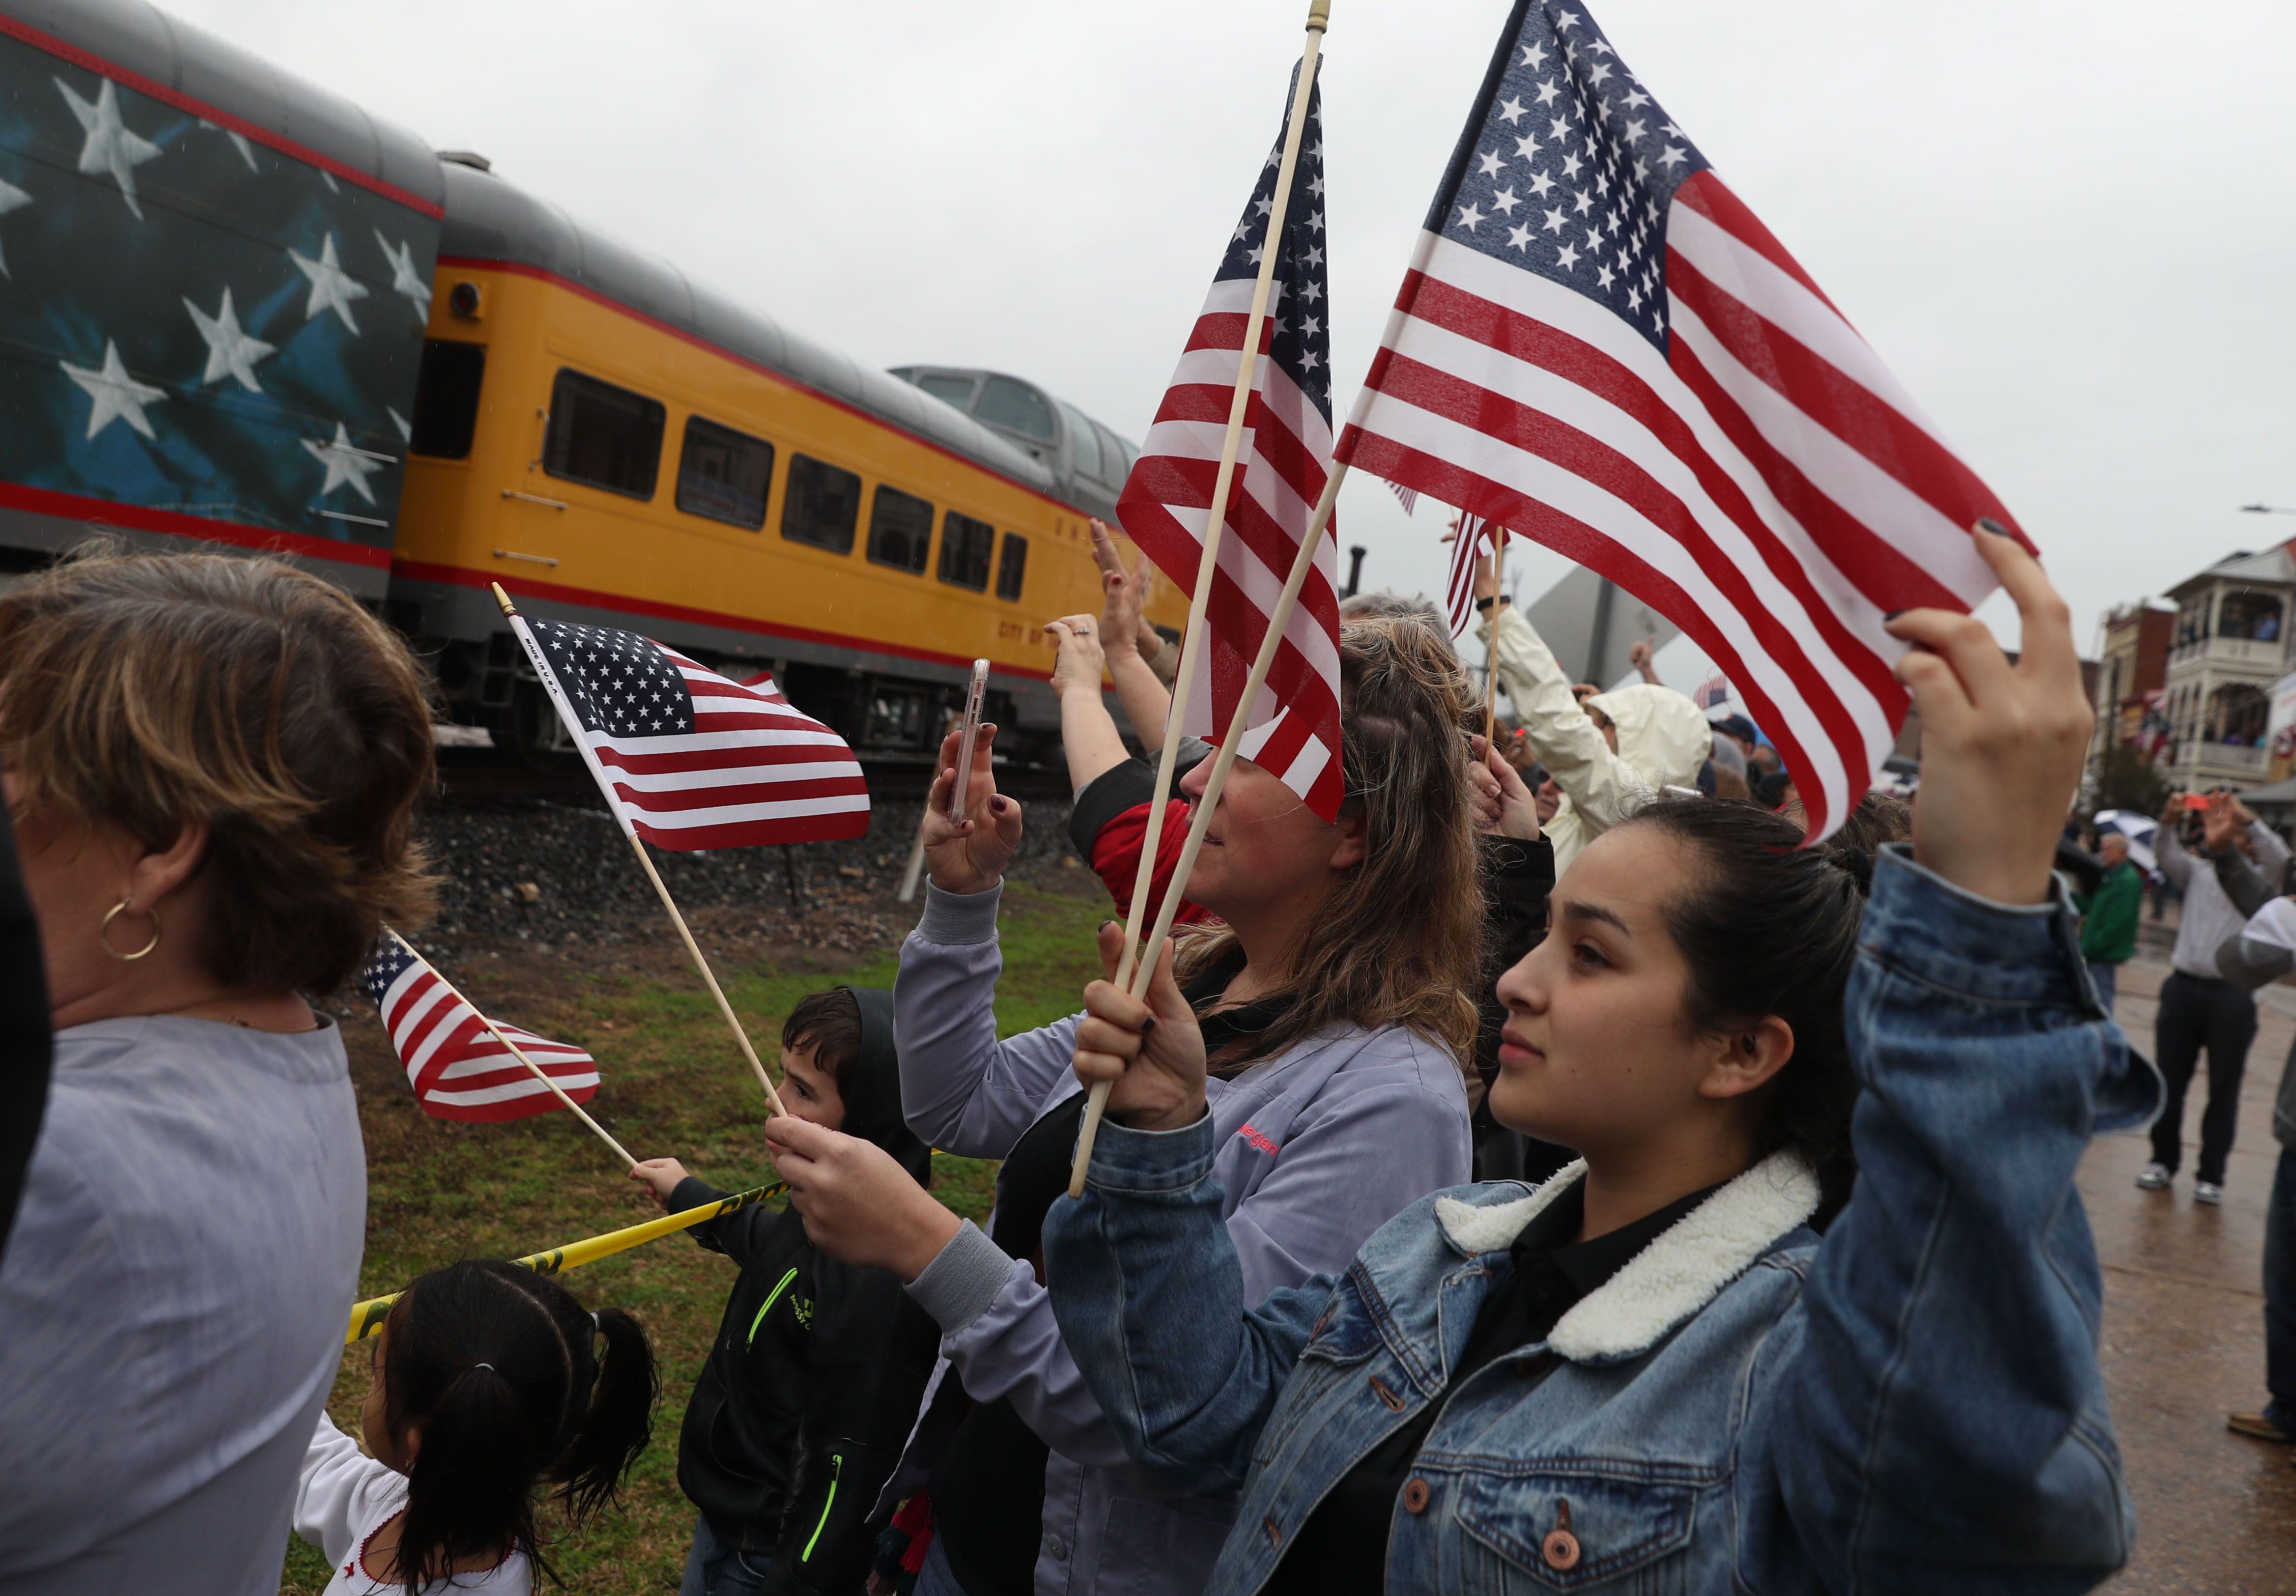 People waving along George H.W. Bush's remains via train in Texas